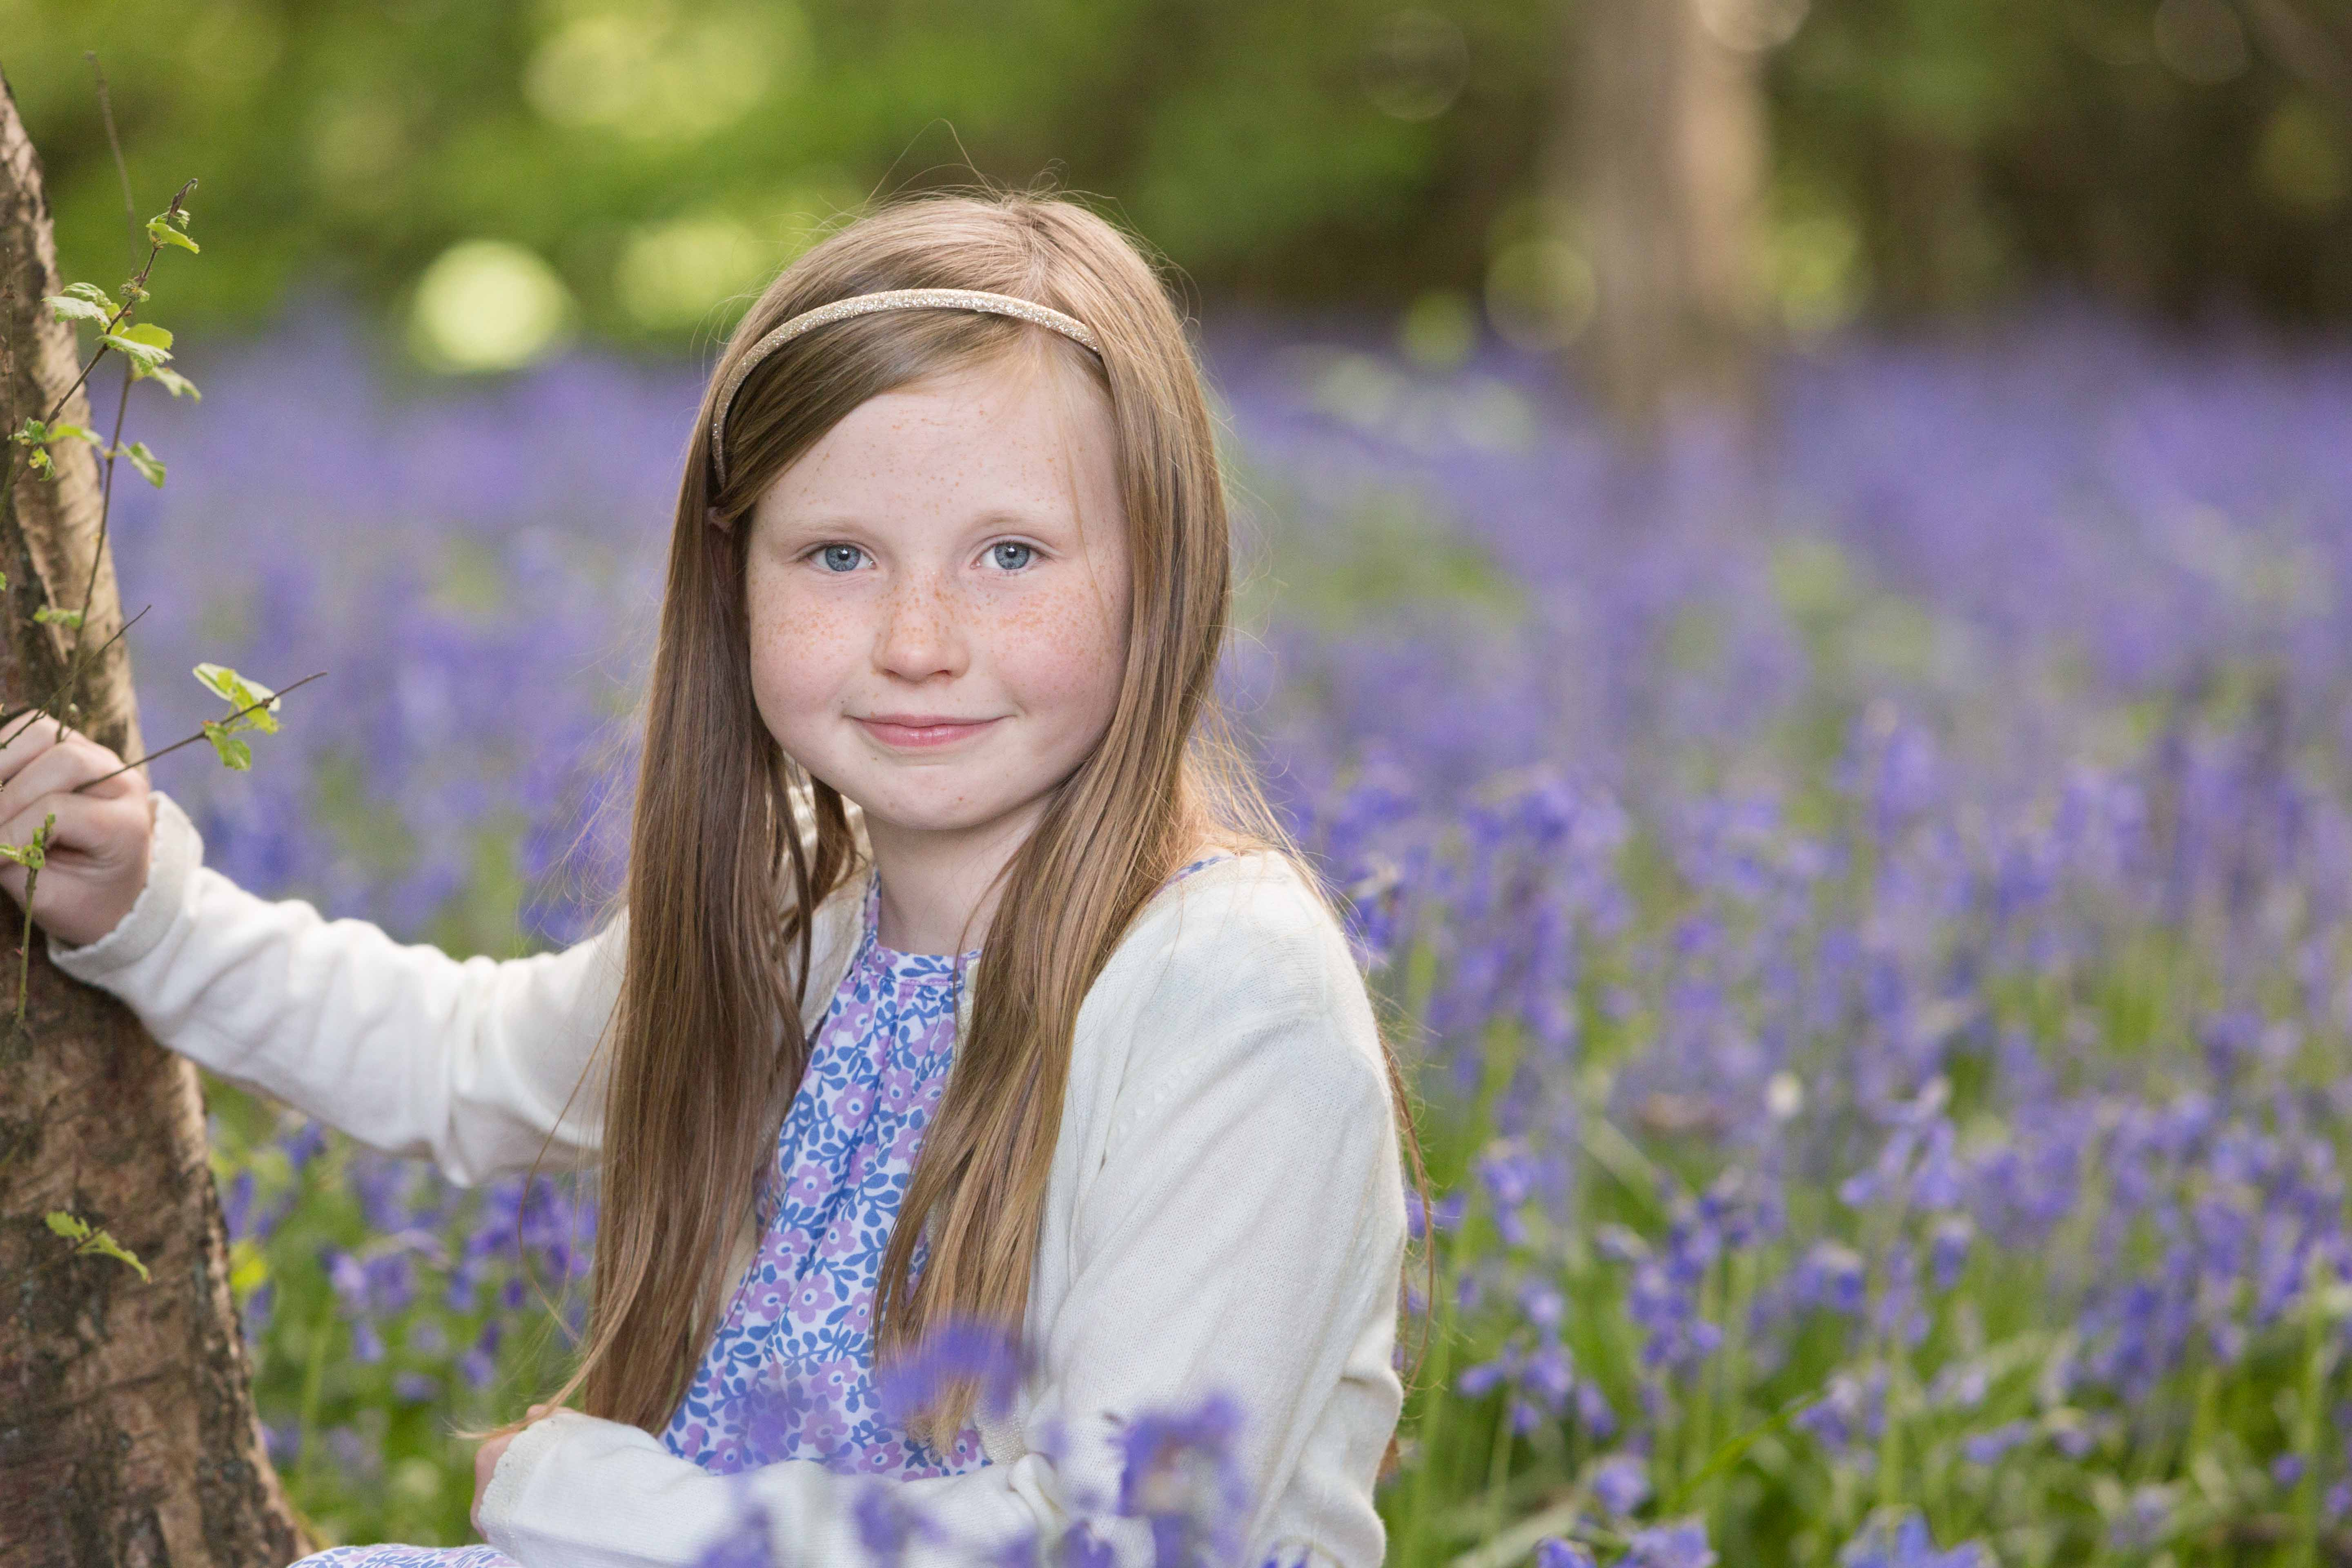 girl bluebells